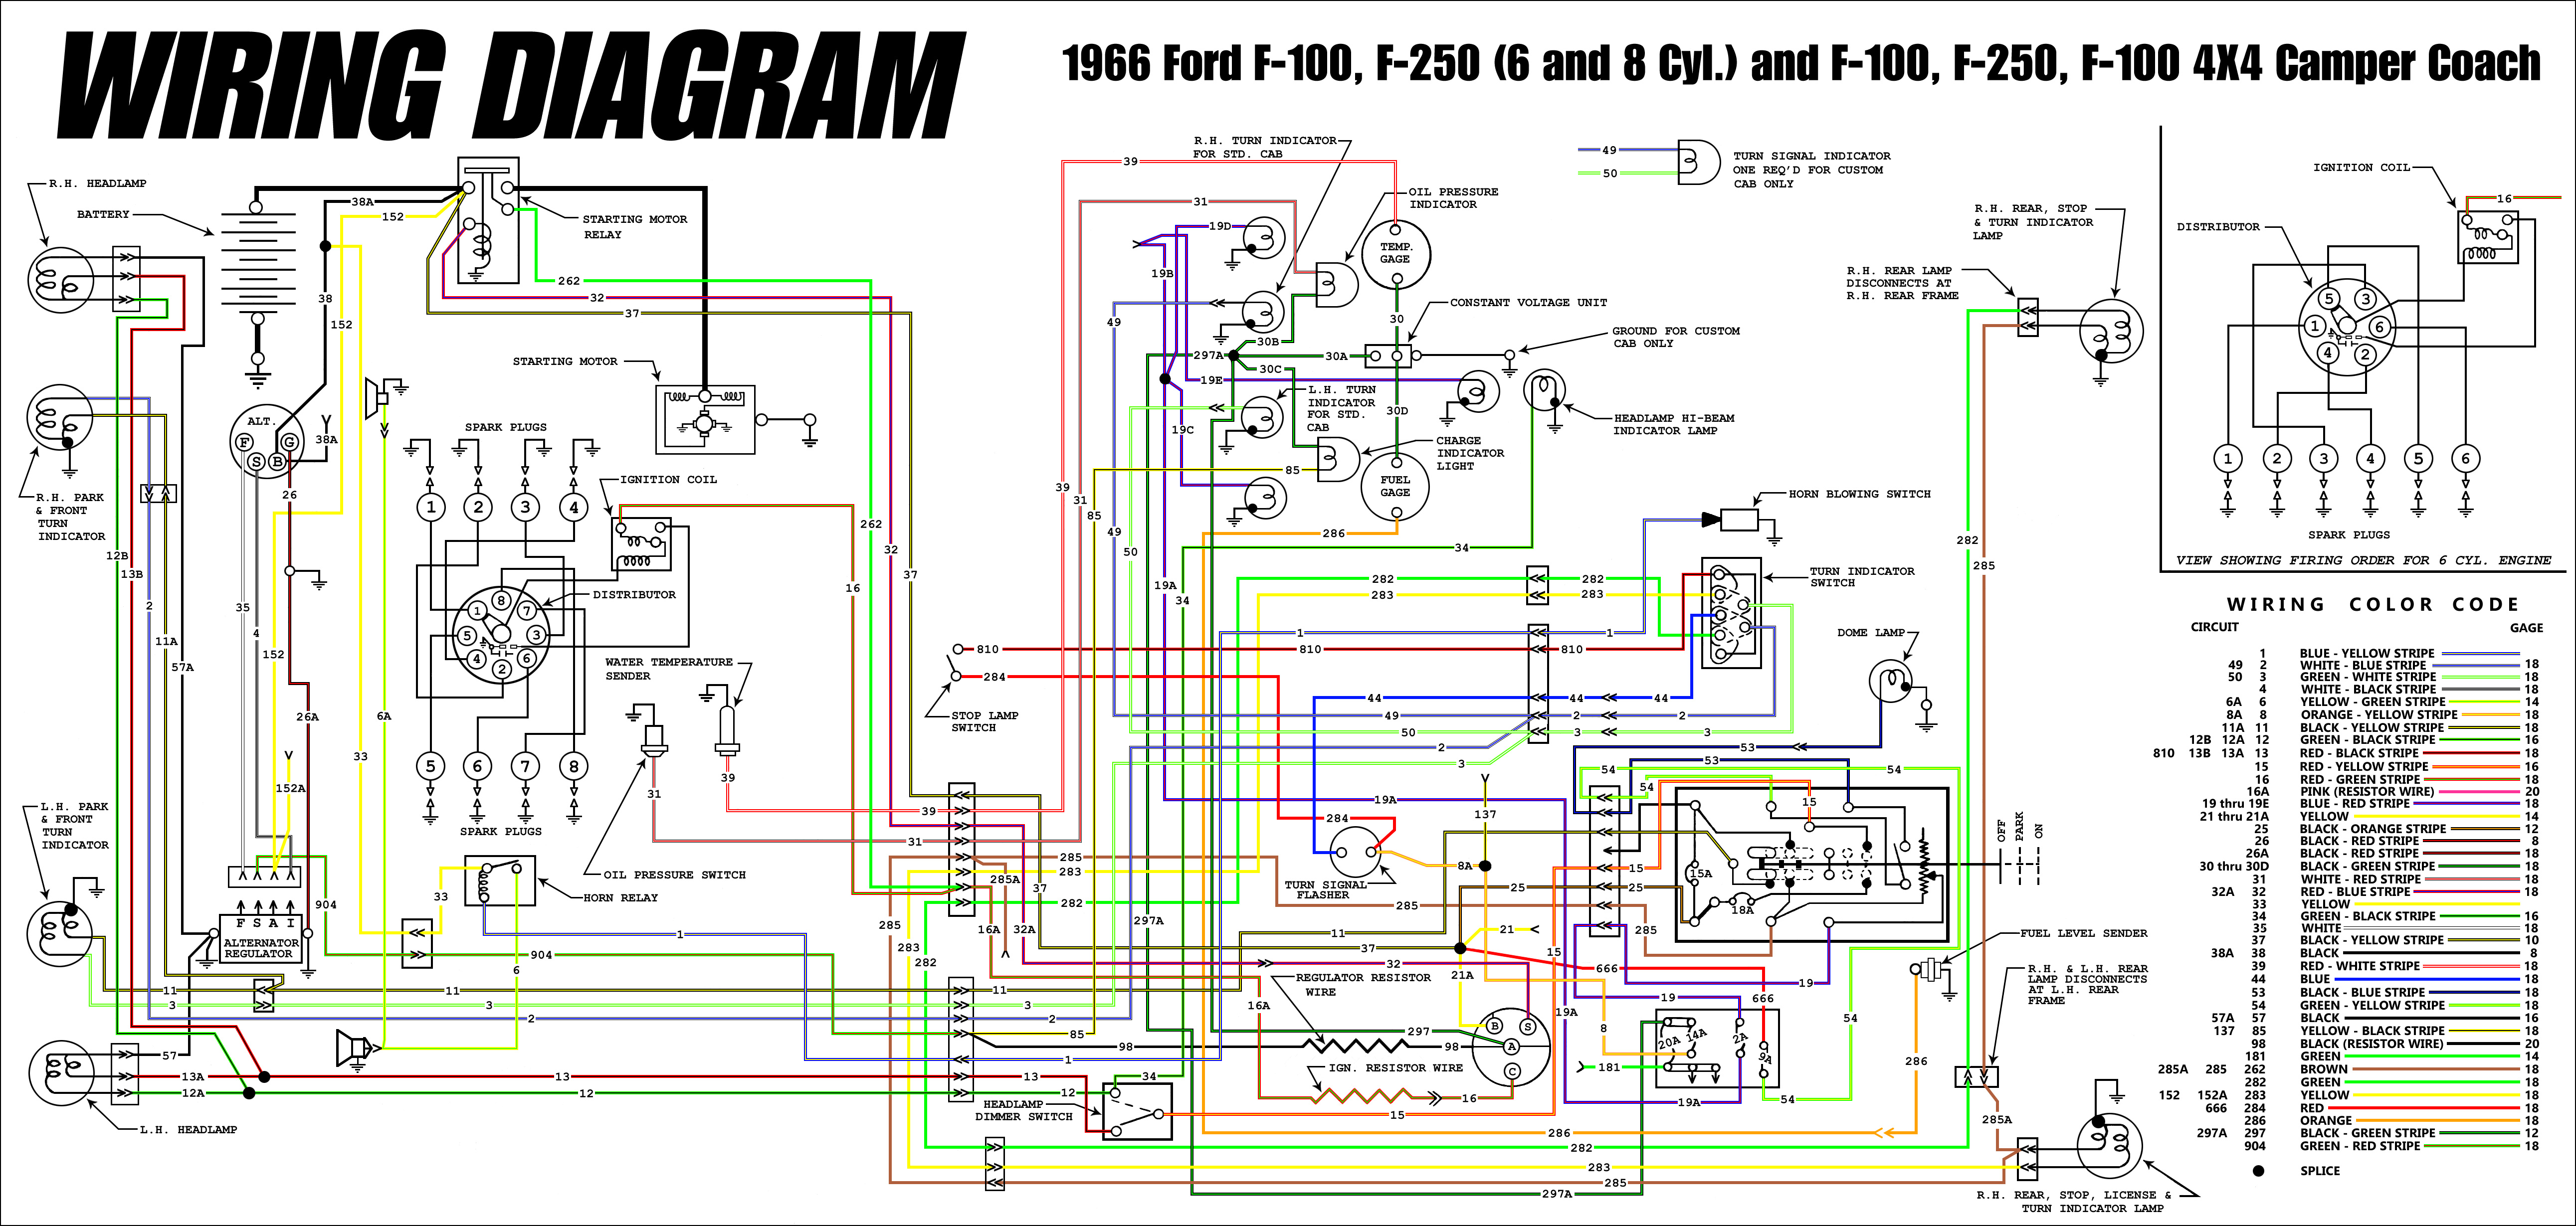 66 Chevy Truck Wiring Diagram 1966 Ford Truck Wiring Diagrams Fordification Info The